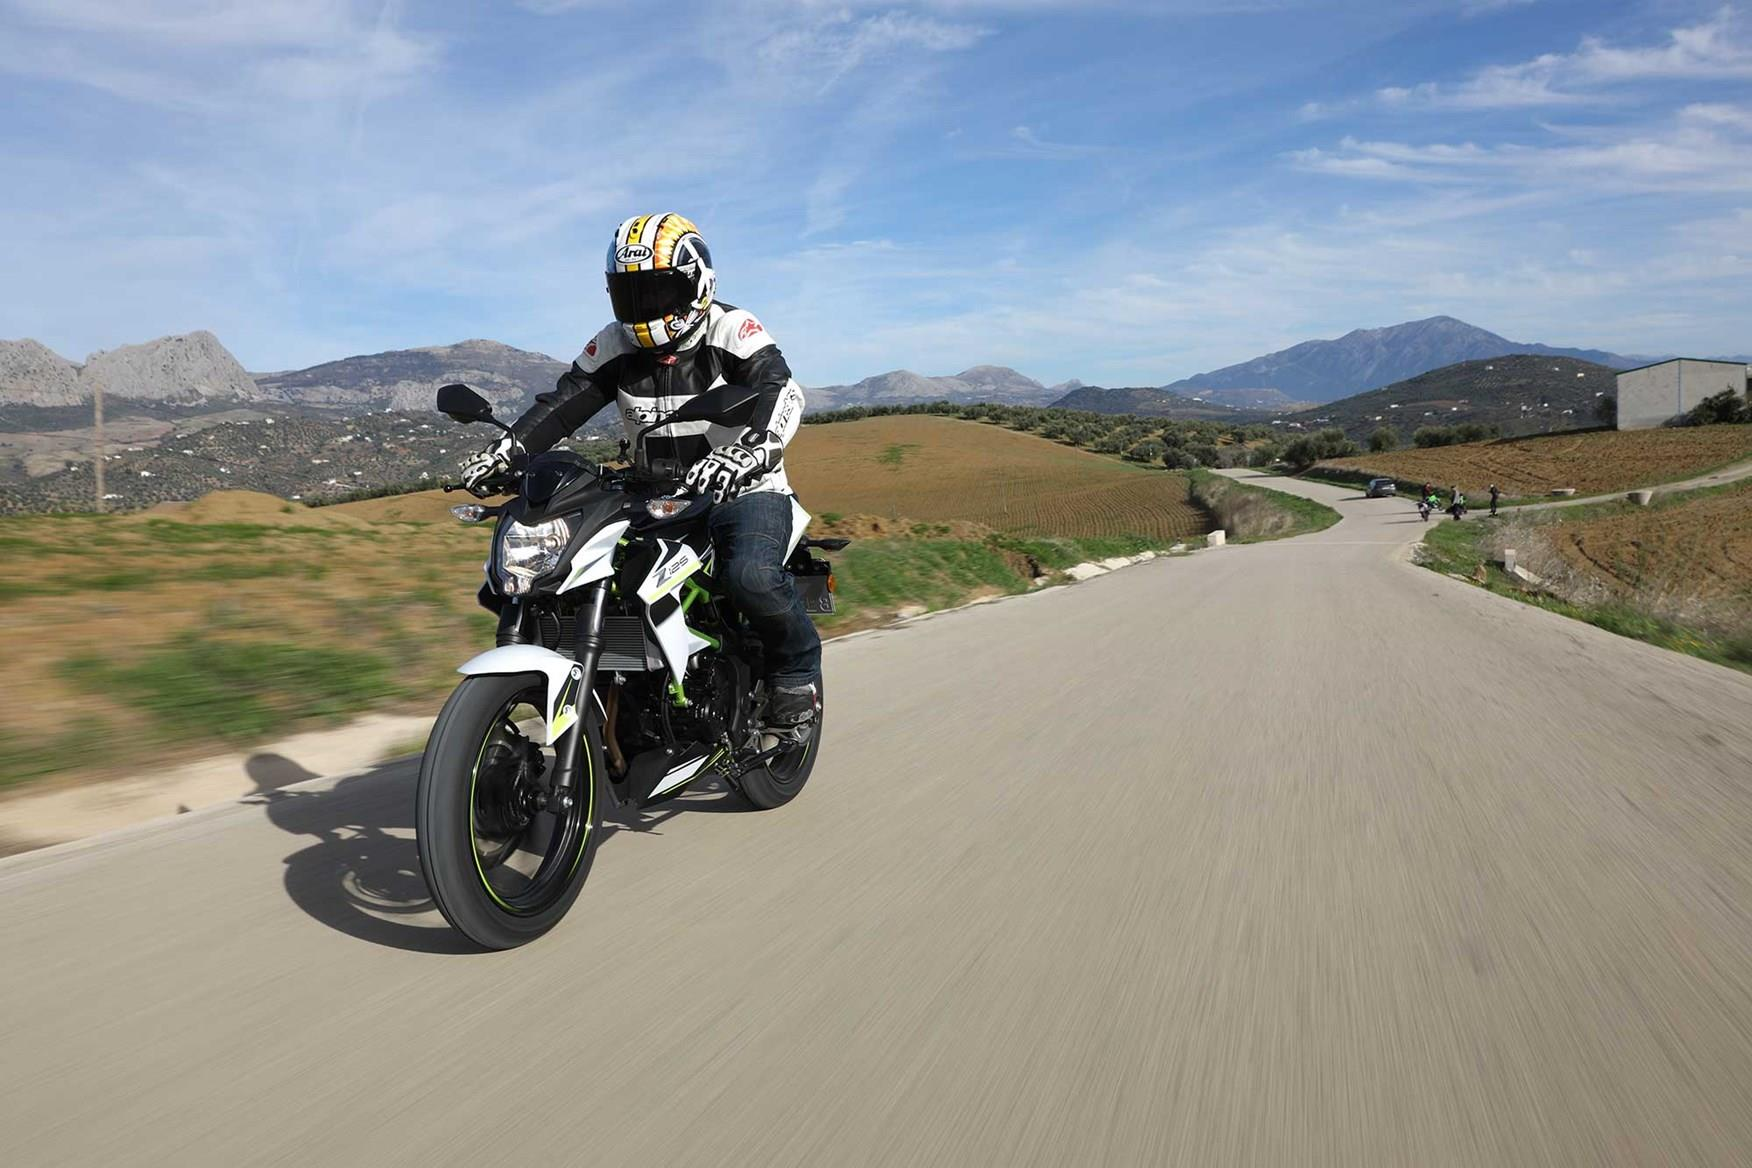 The Kawasaki Z125 is the latest bike to arrive in this range